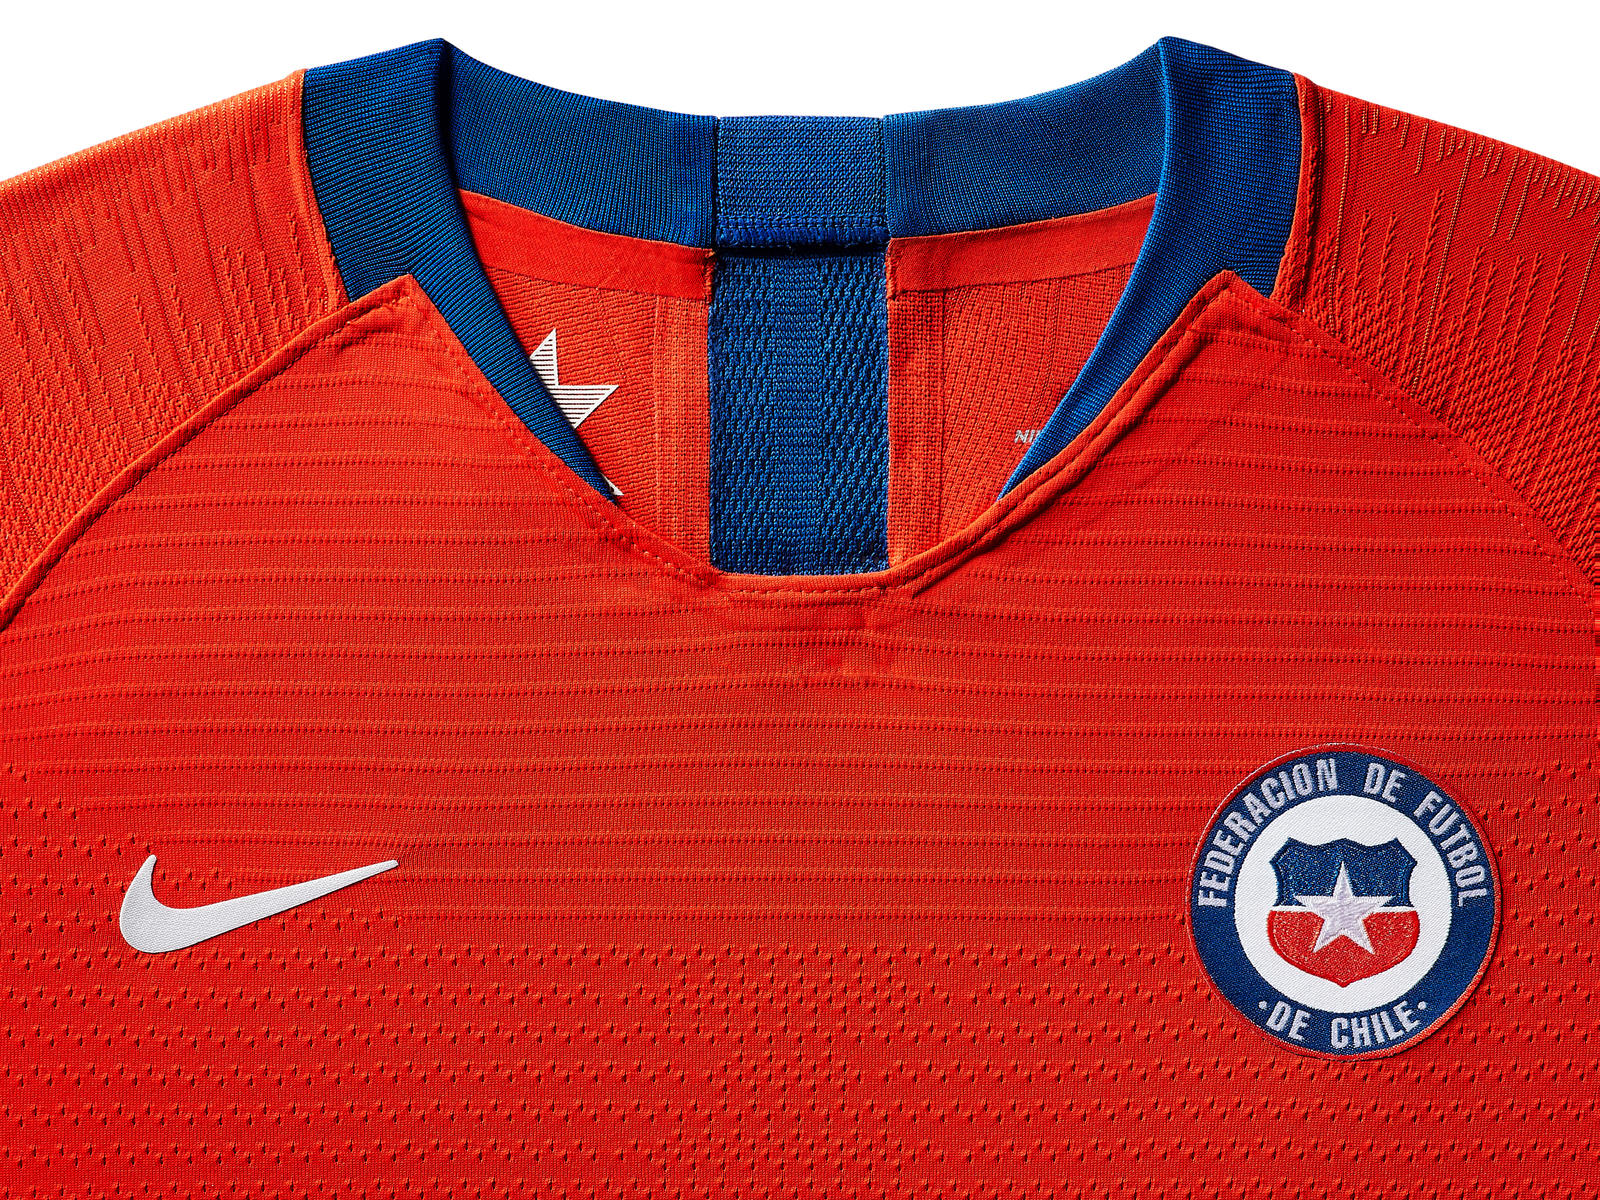 chile-national-team-kit-2019-laydown-3_85918.jpg